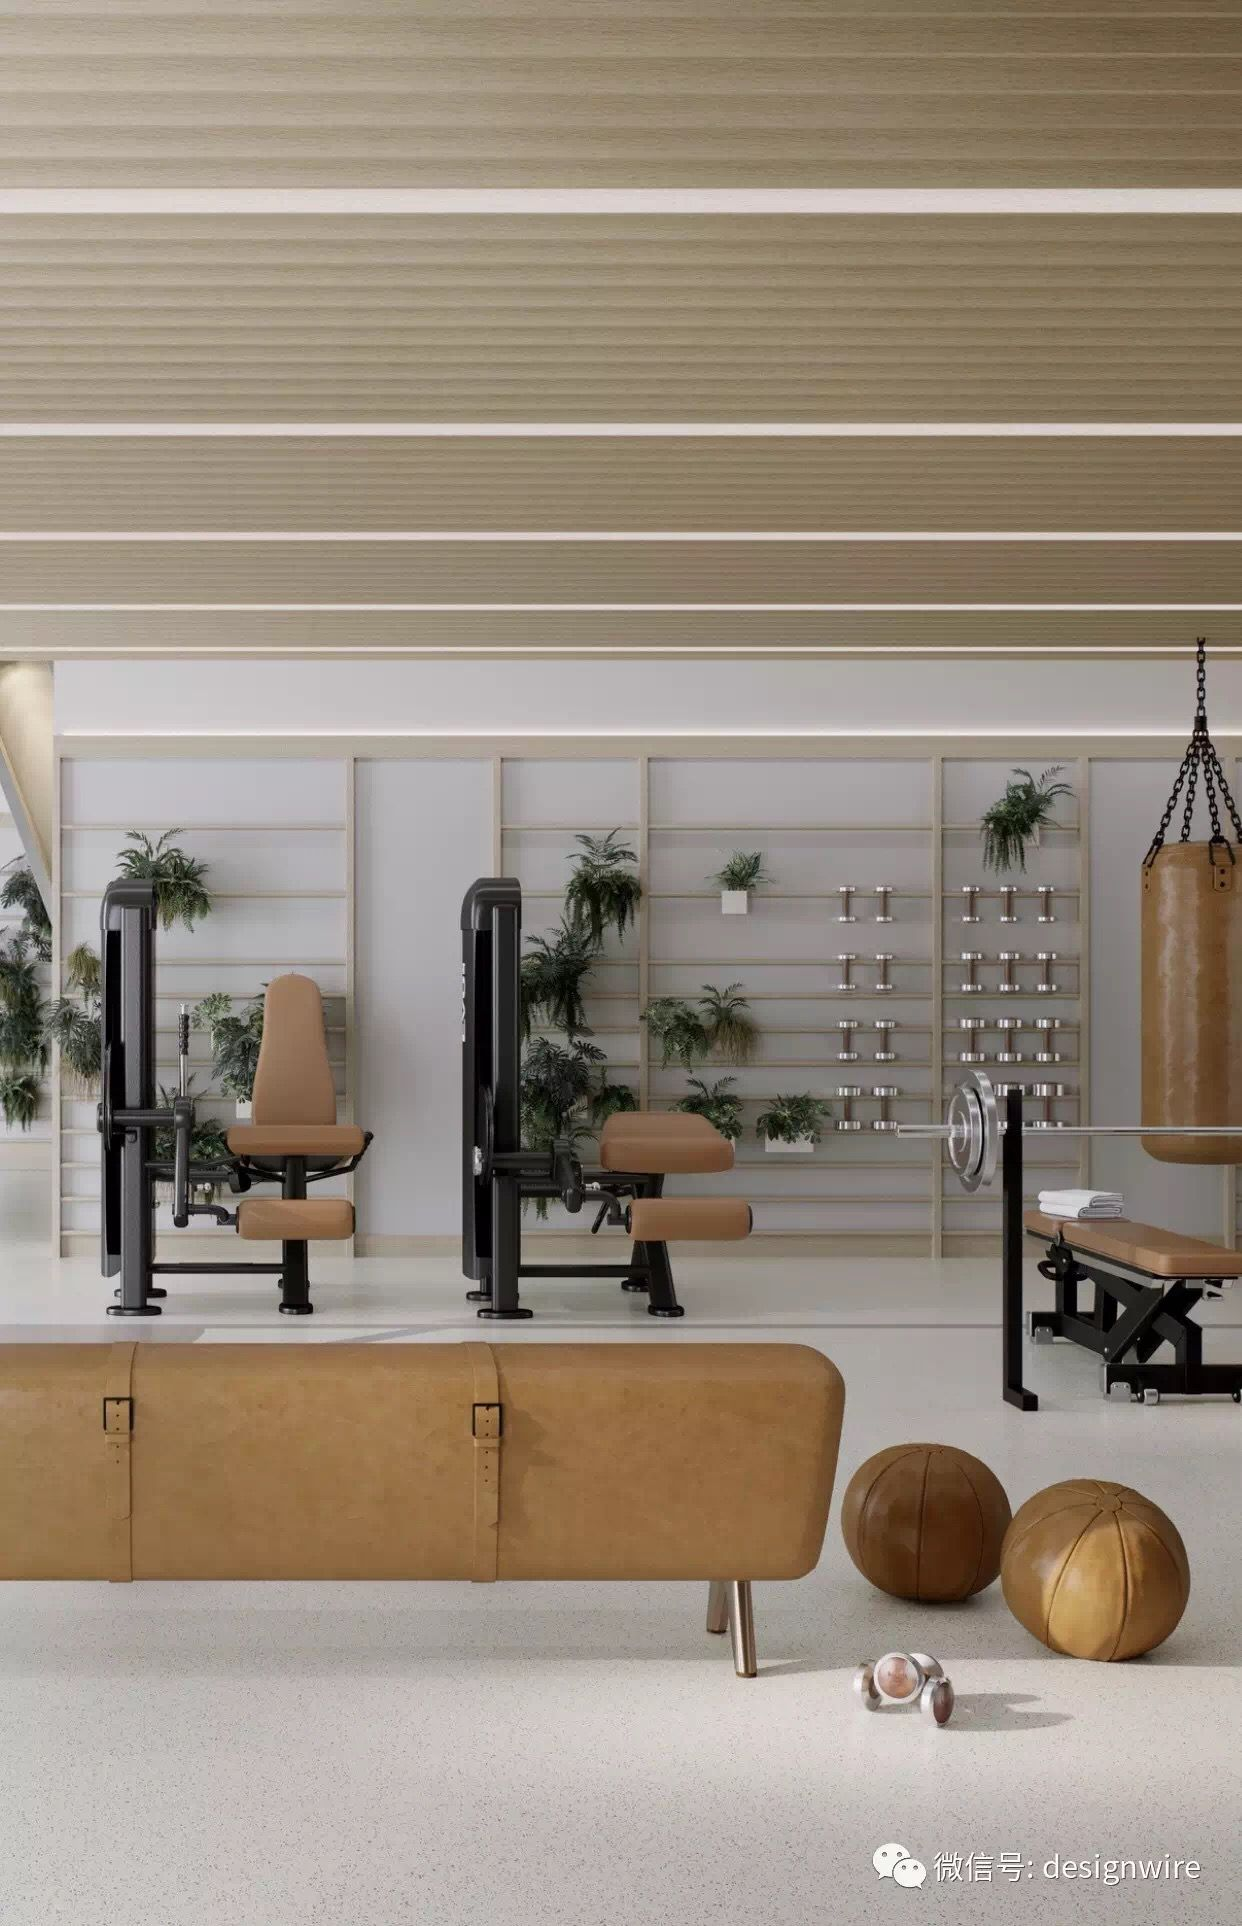 Interior Design Ideas For Home Gym: Pin By Frank On Housing Design /客厅/厨房/卧室/